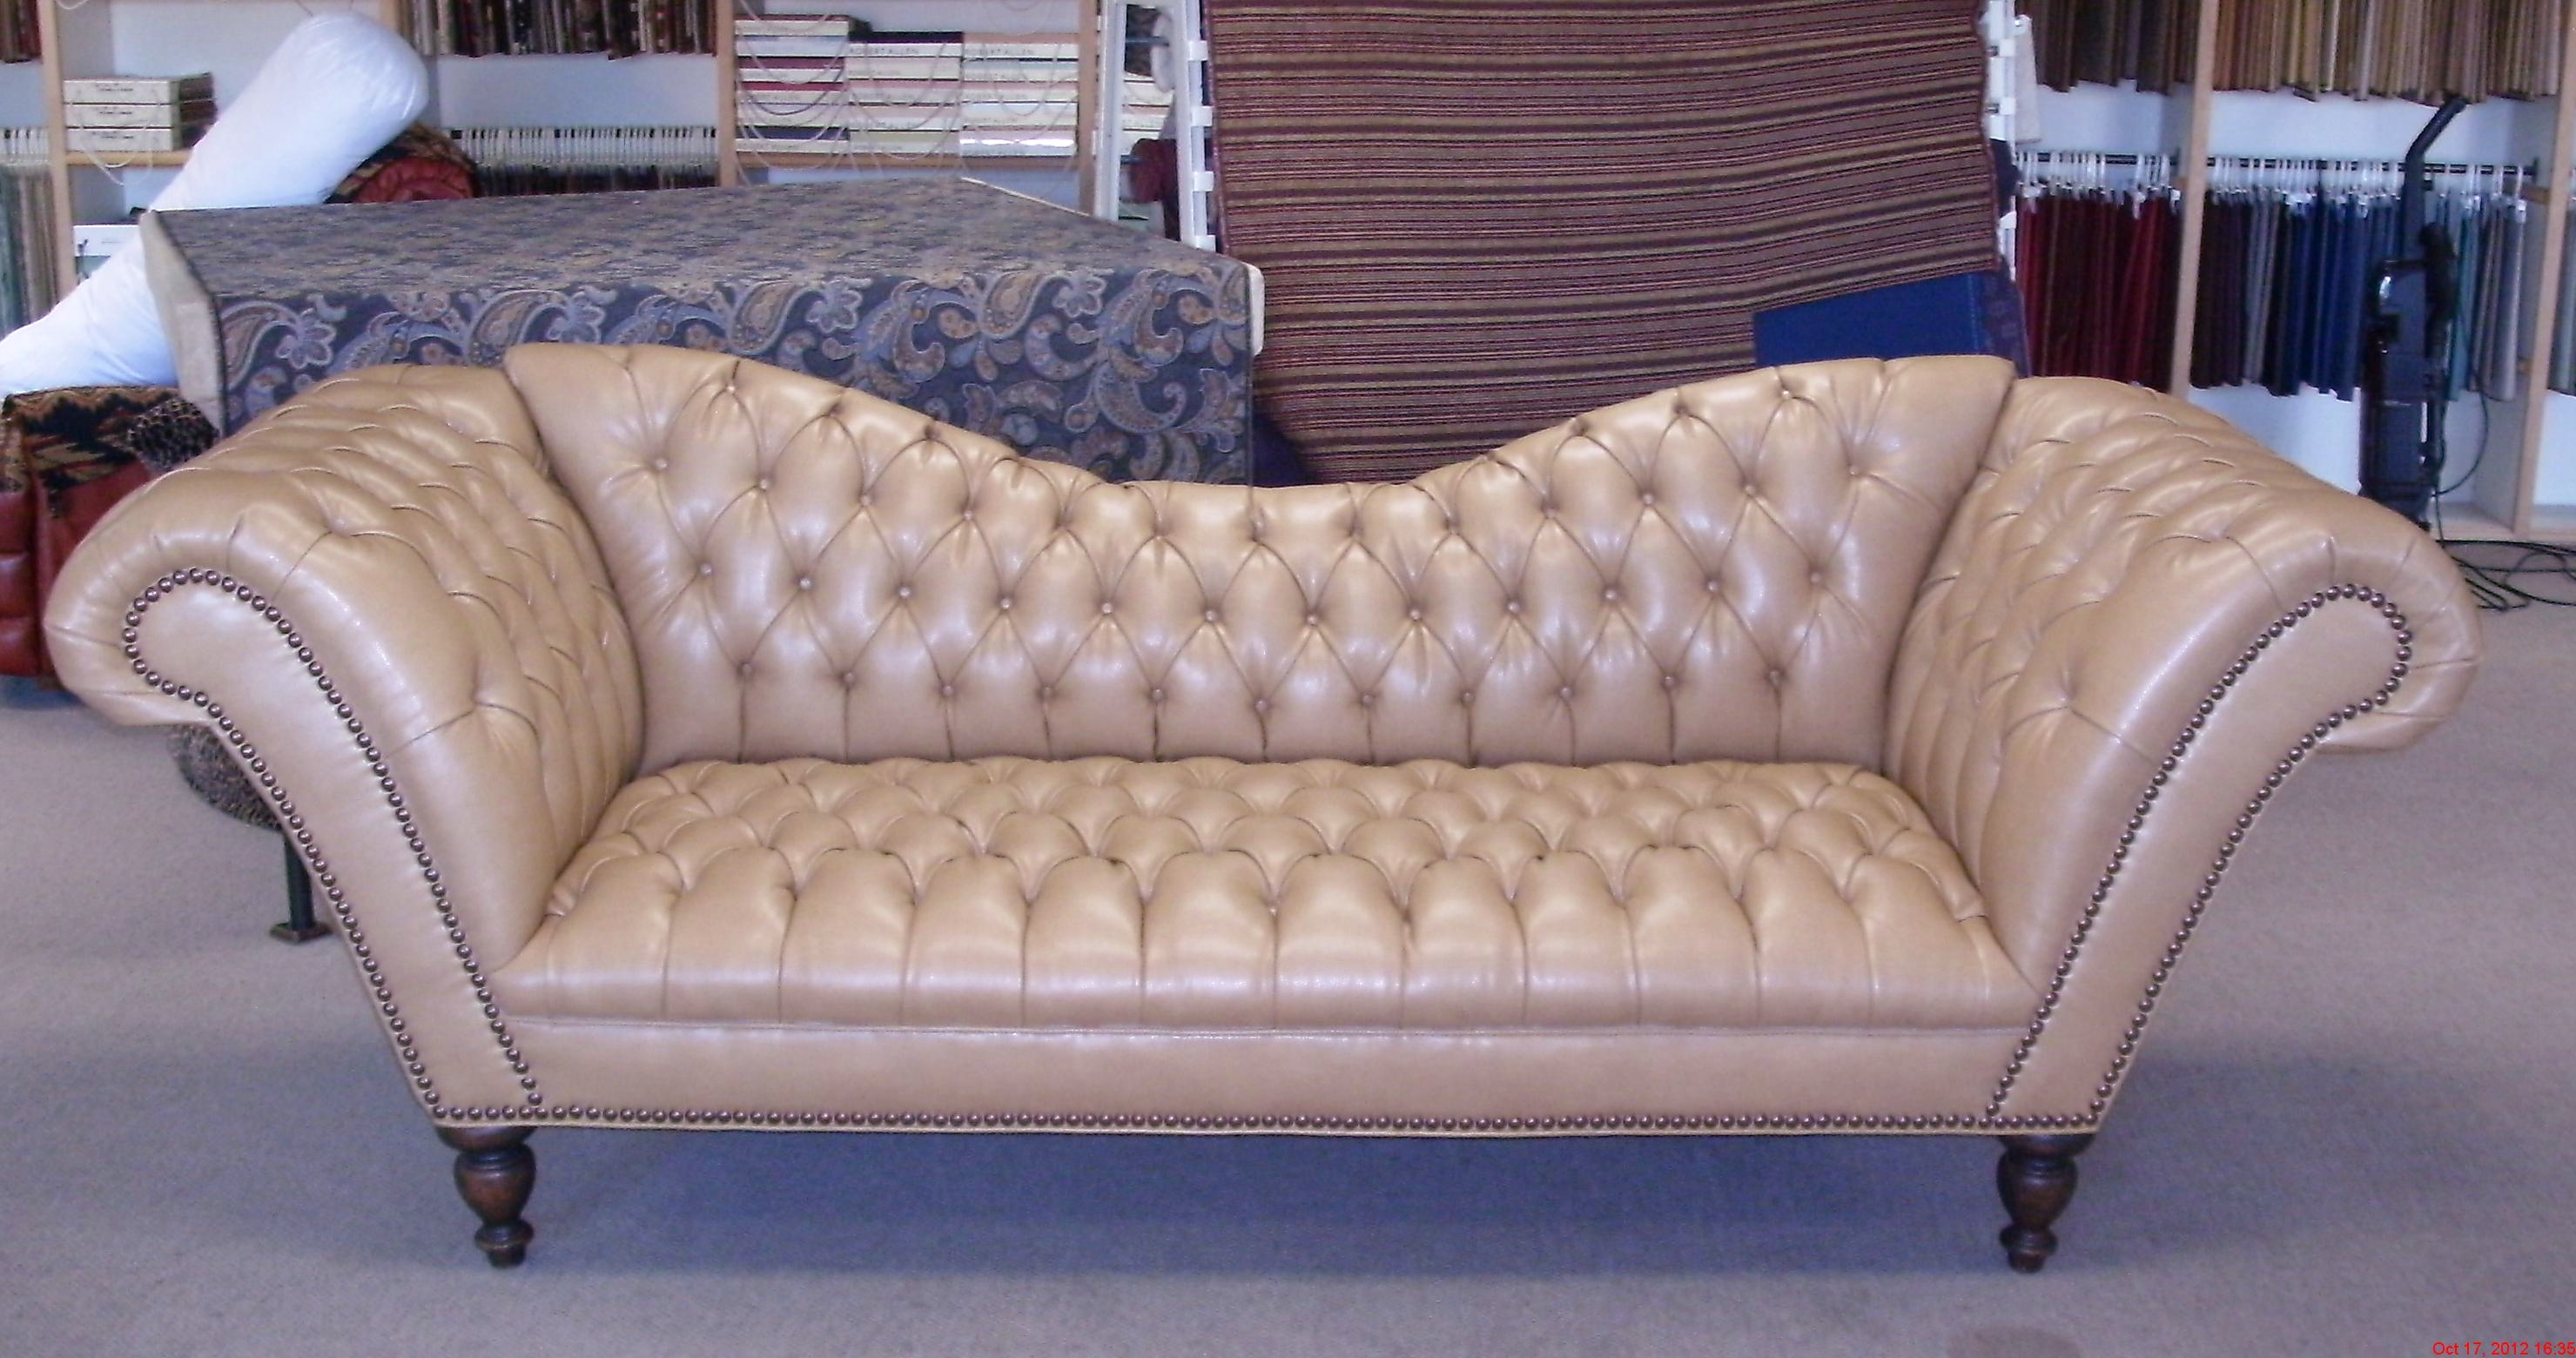 Groovy Upholstery Shop Billings Mt Harolds Upholstery Inc Caraccident5 Cool Chair Designs And Ideas Caraccident5Info